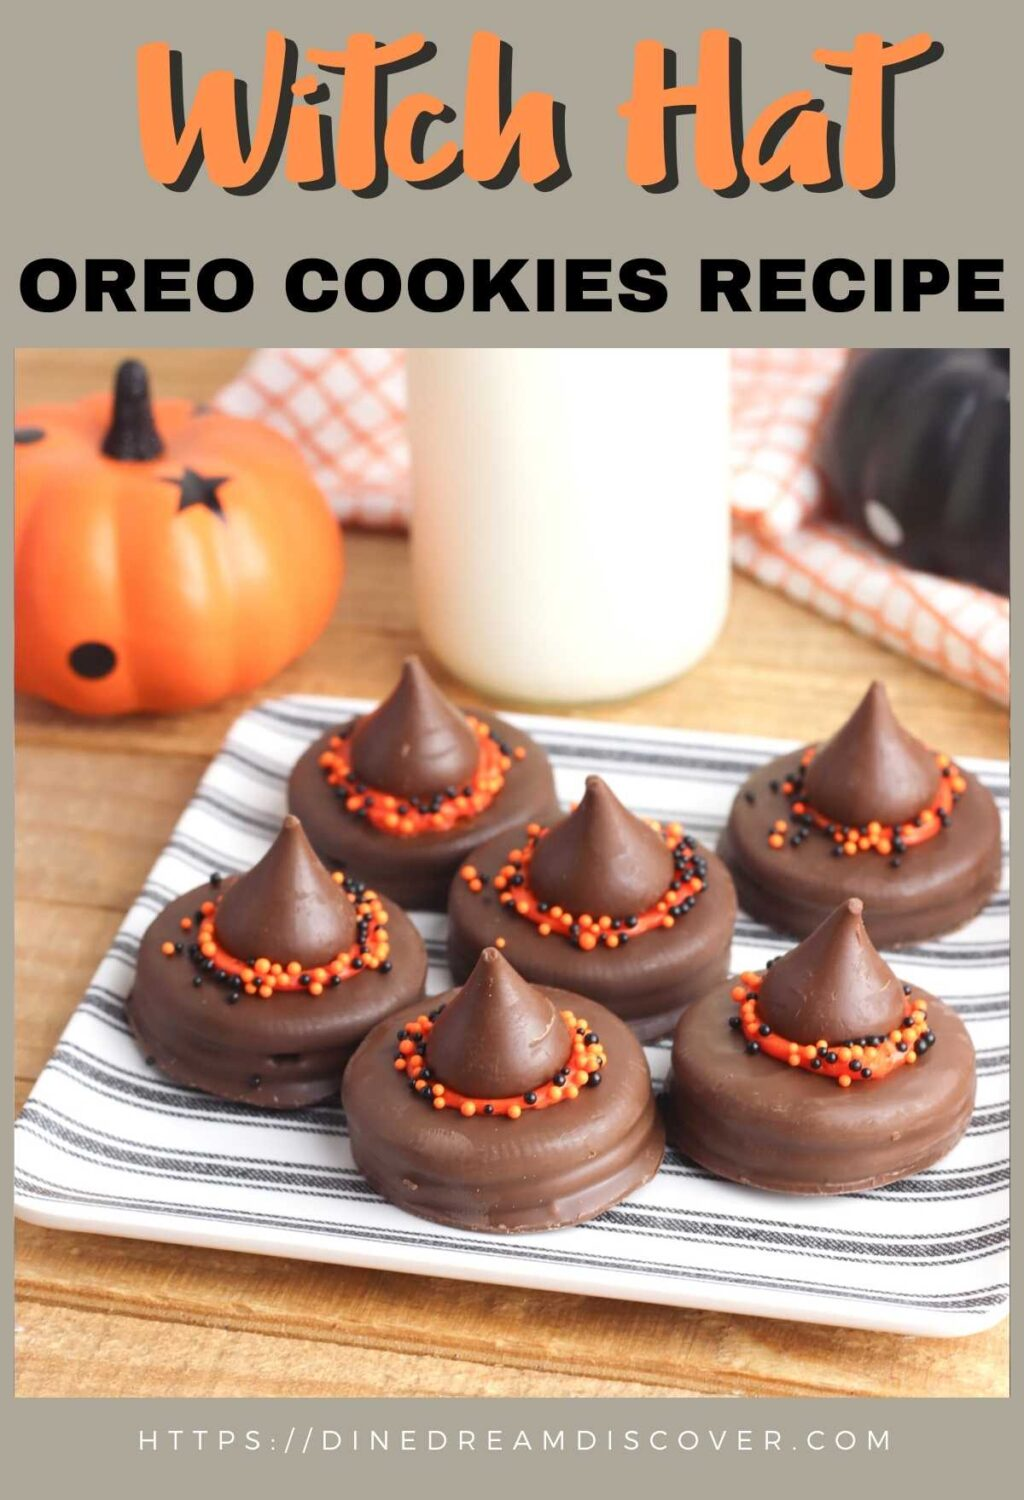 How to Make Witch Hat Oreo Cookies